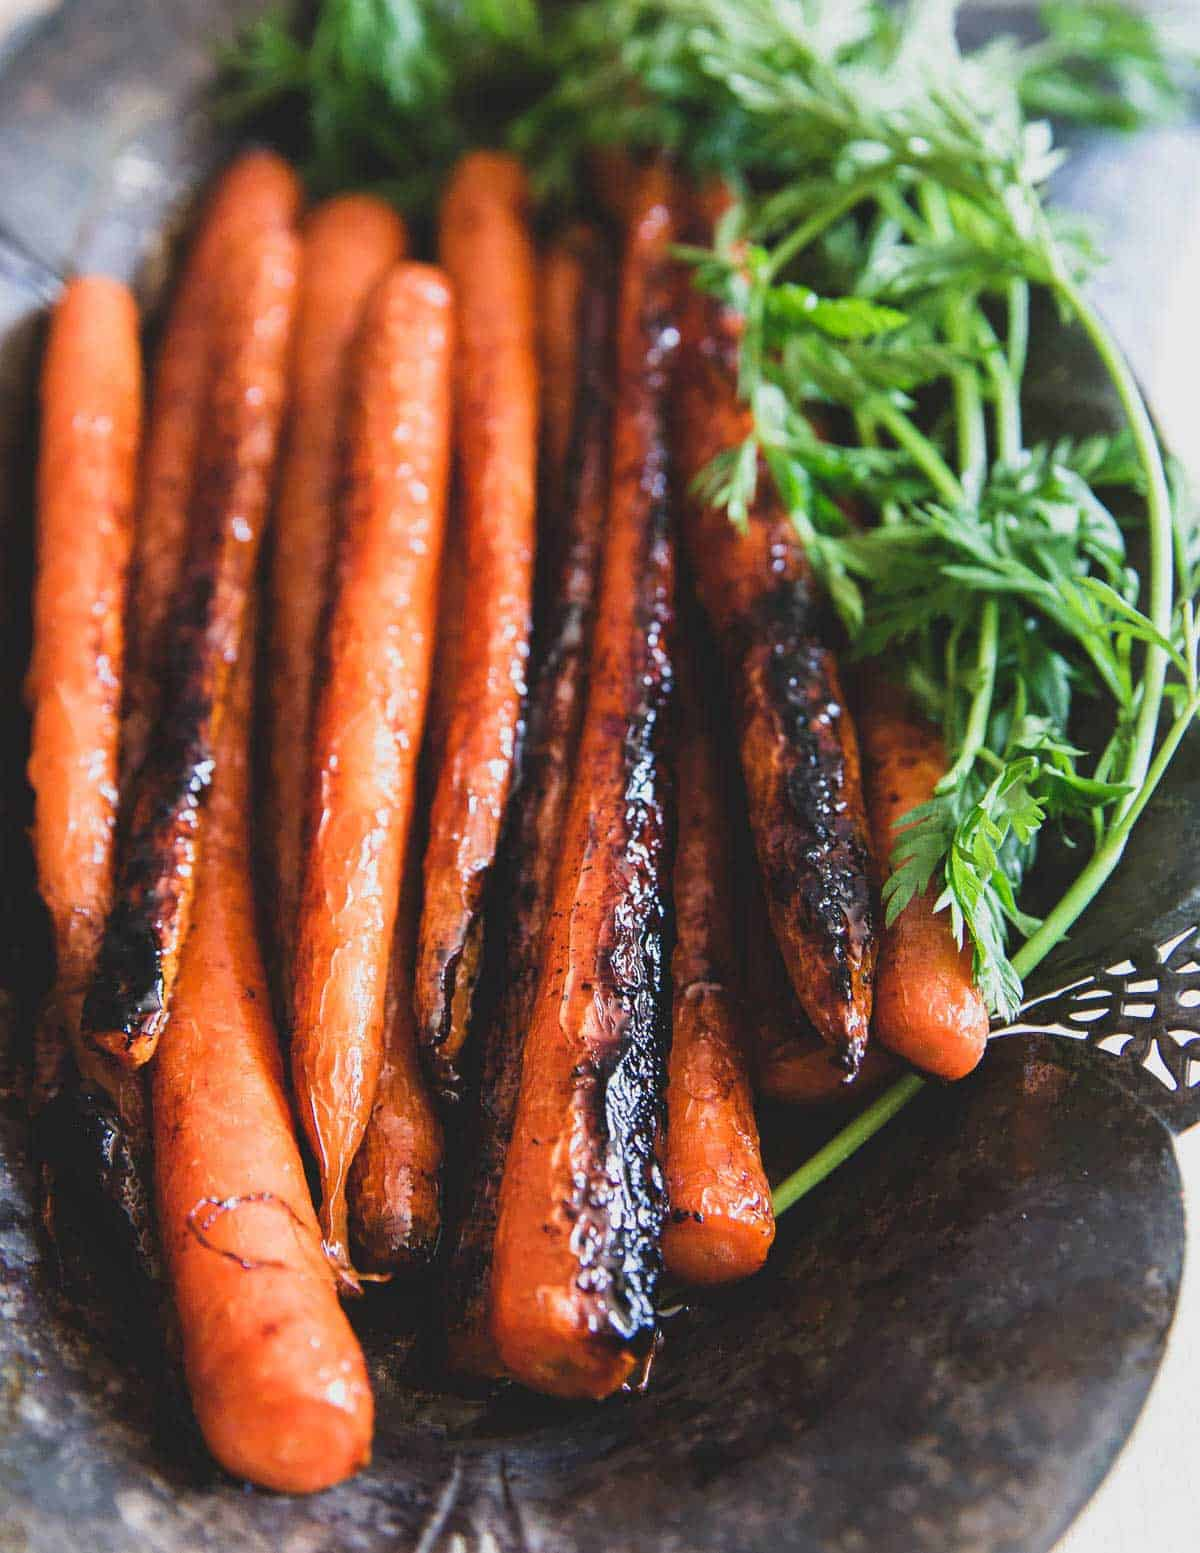 Brown sugar glazed carrots are made in just 15 minutes on the stove top for an easy dinner side dish.